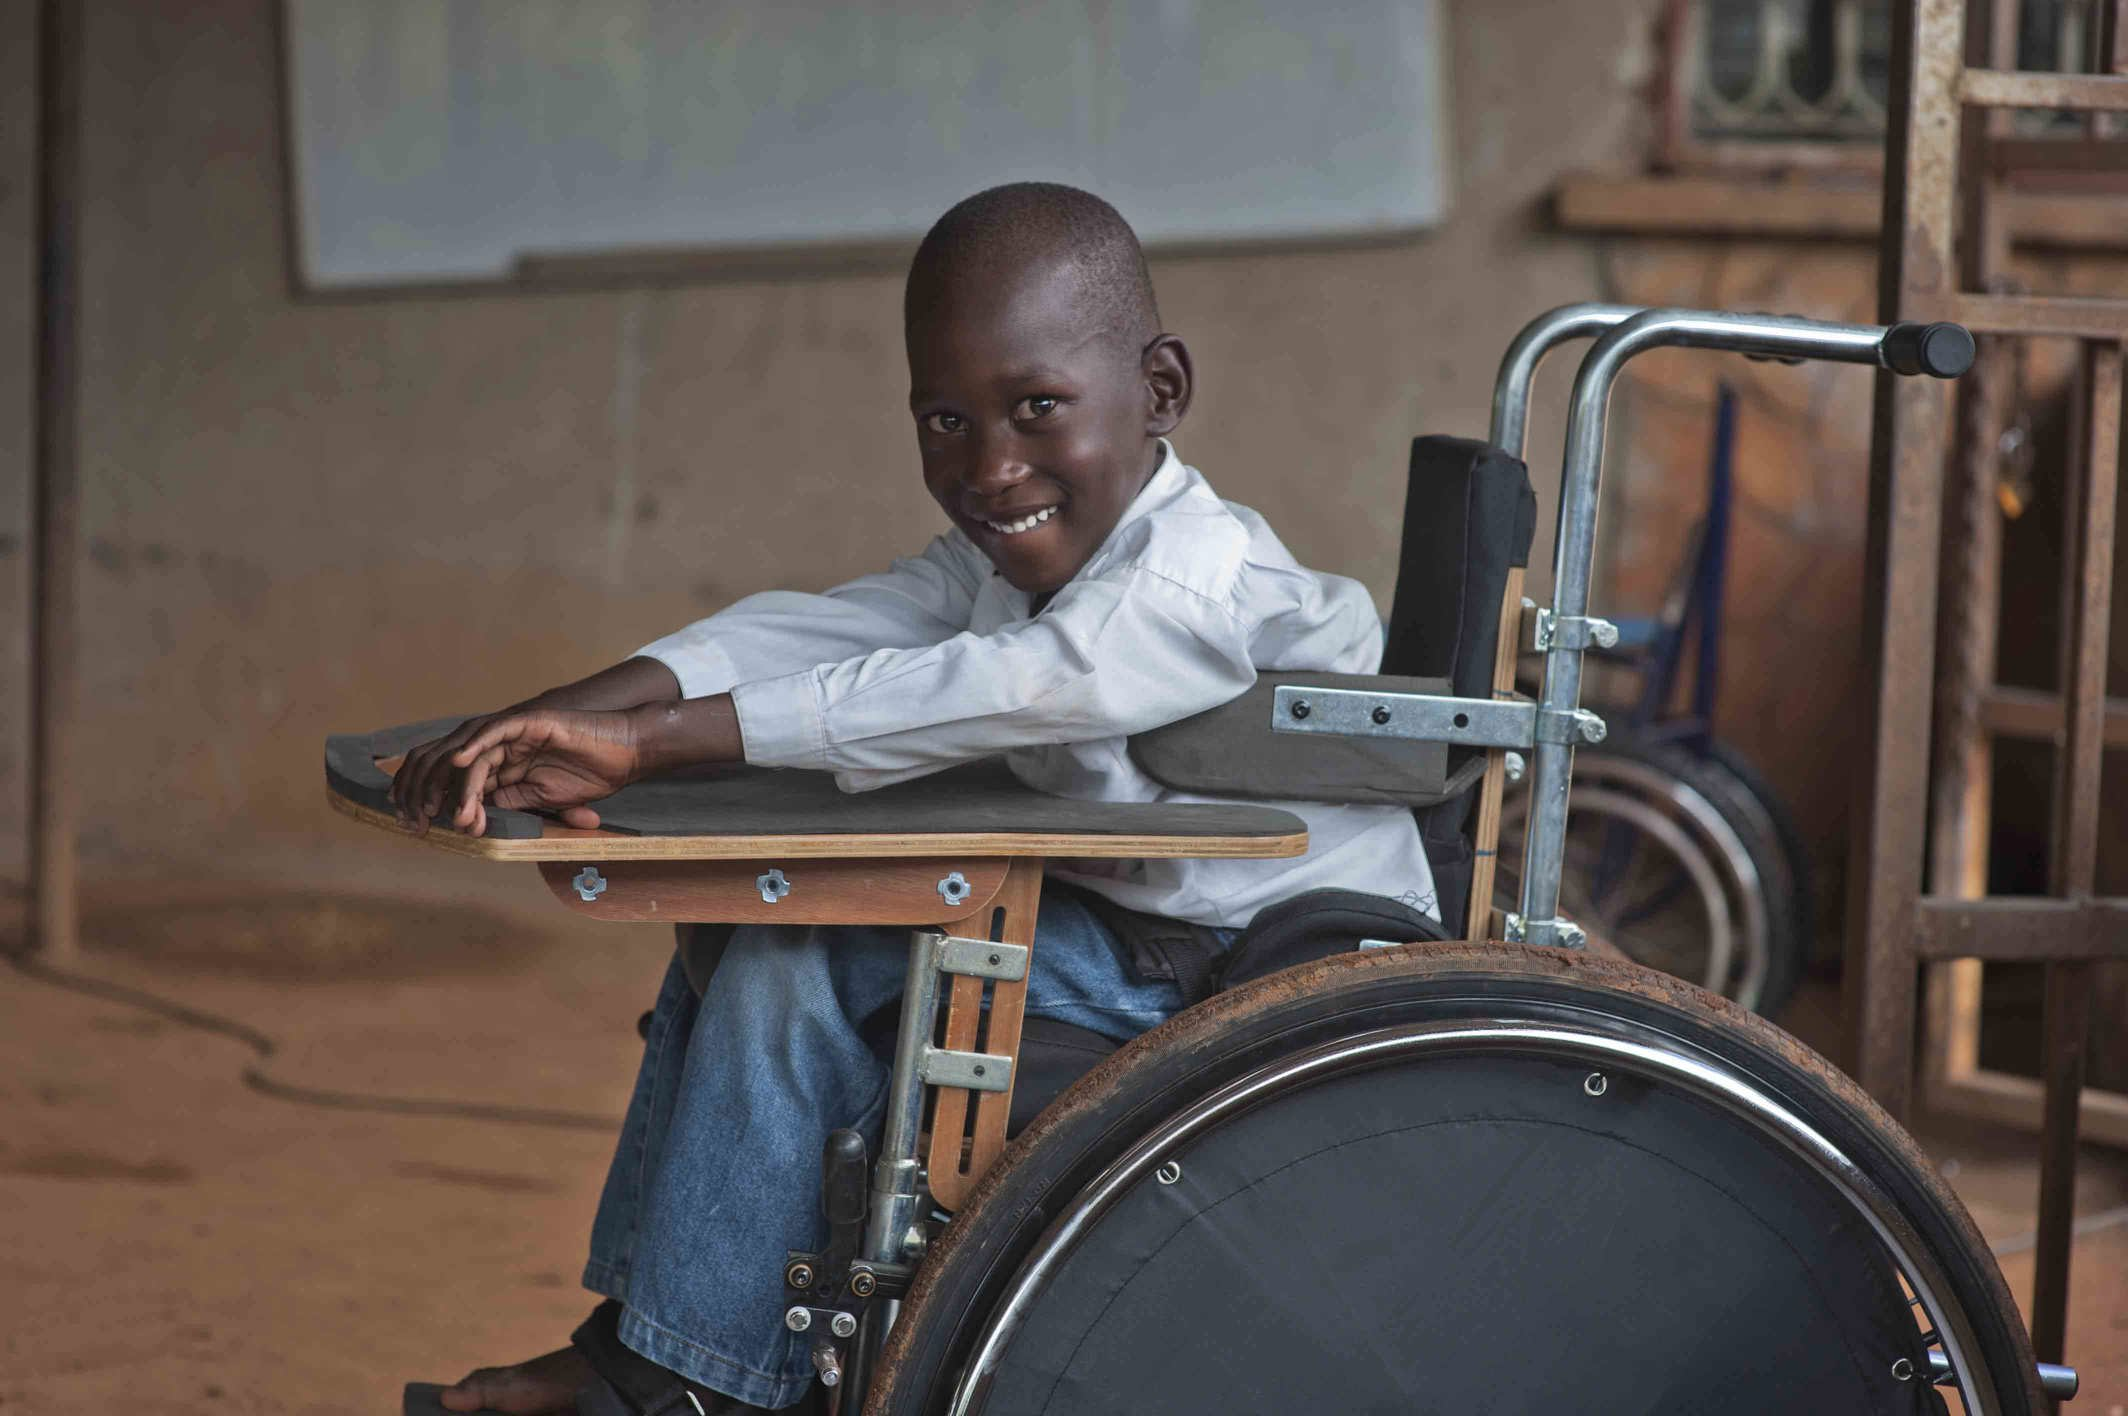 A young child from Uganda in a Motivation wheelchair at school, leaning forward and smiling